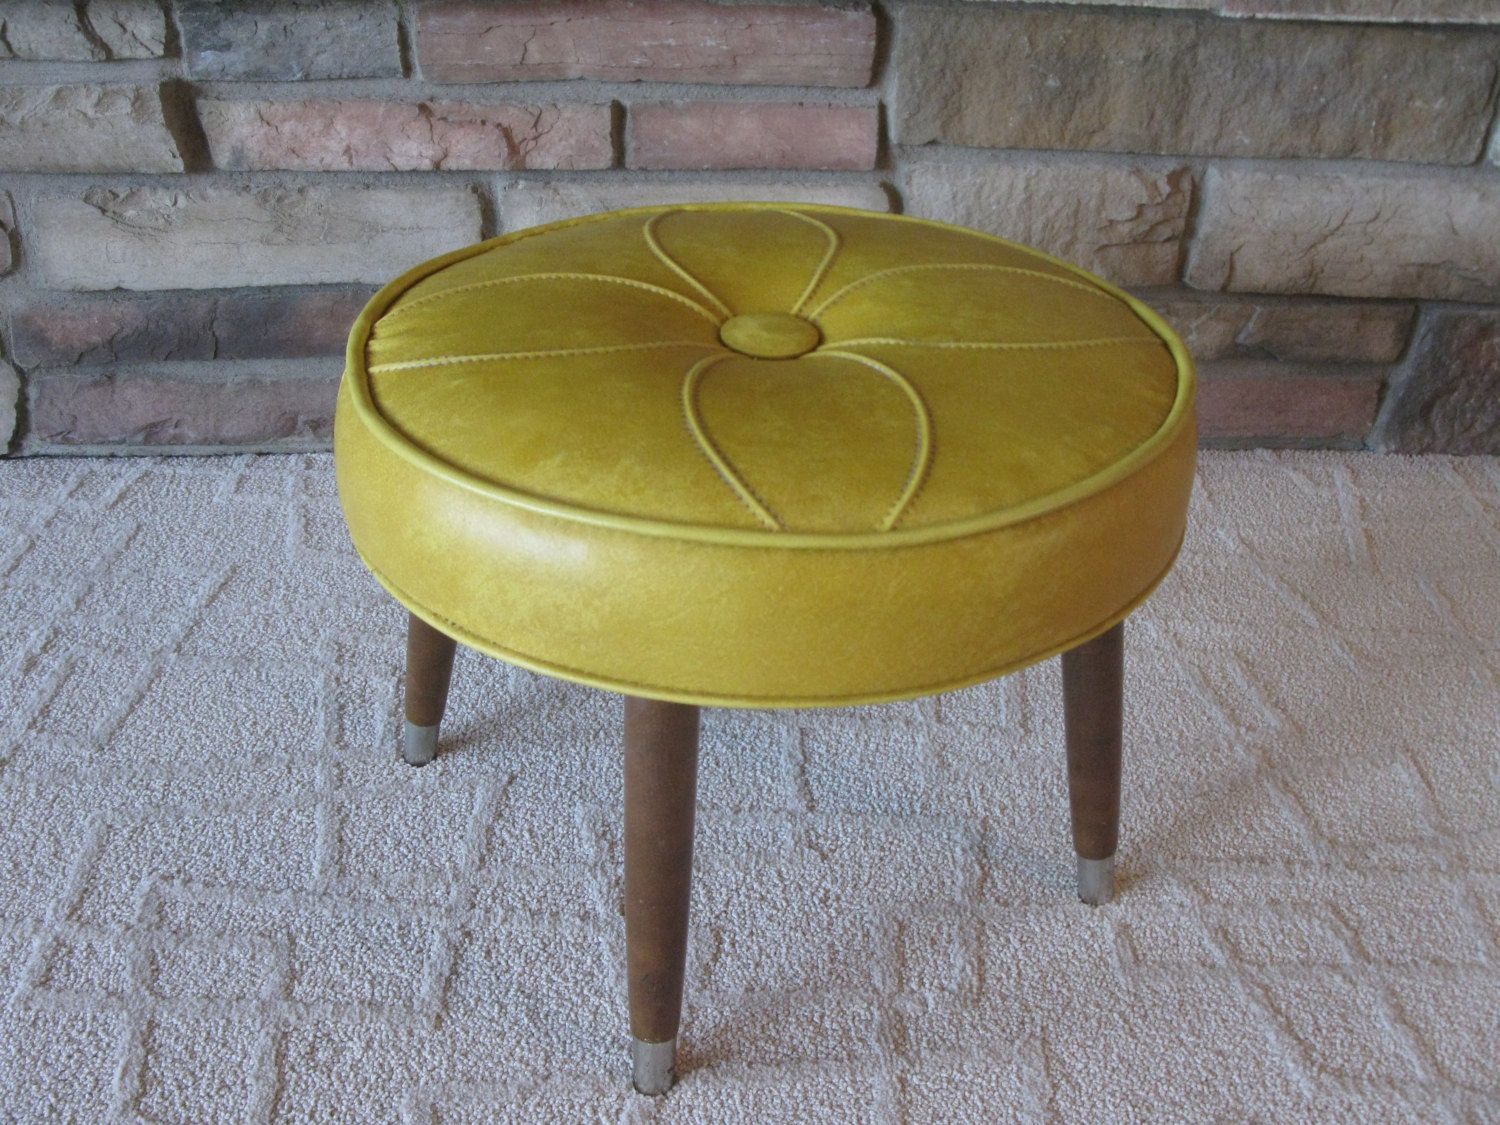 Retro Footstool Round Harvest Gold Vinyl Geometric Flower Pattern Hassock Ottoman Wood Legs Brass Feet Padded Stool Padded Stool Gold Vinyl Footstool